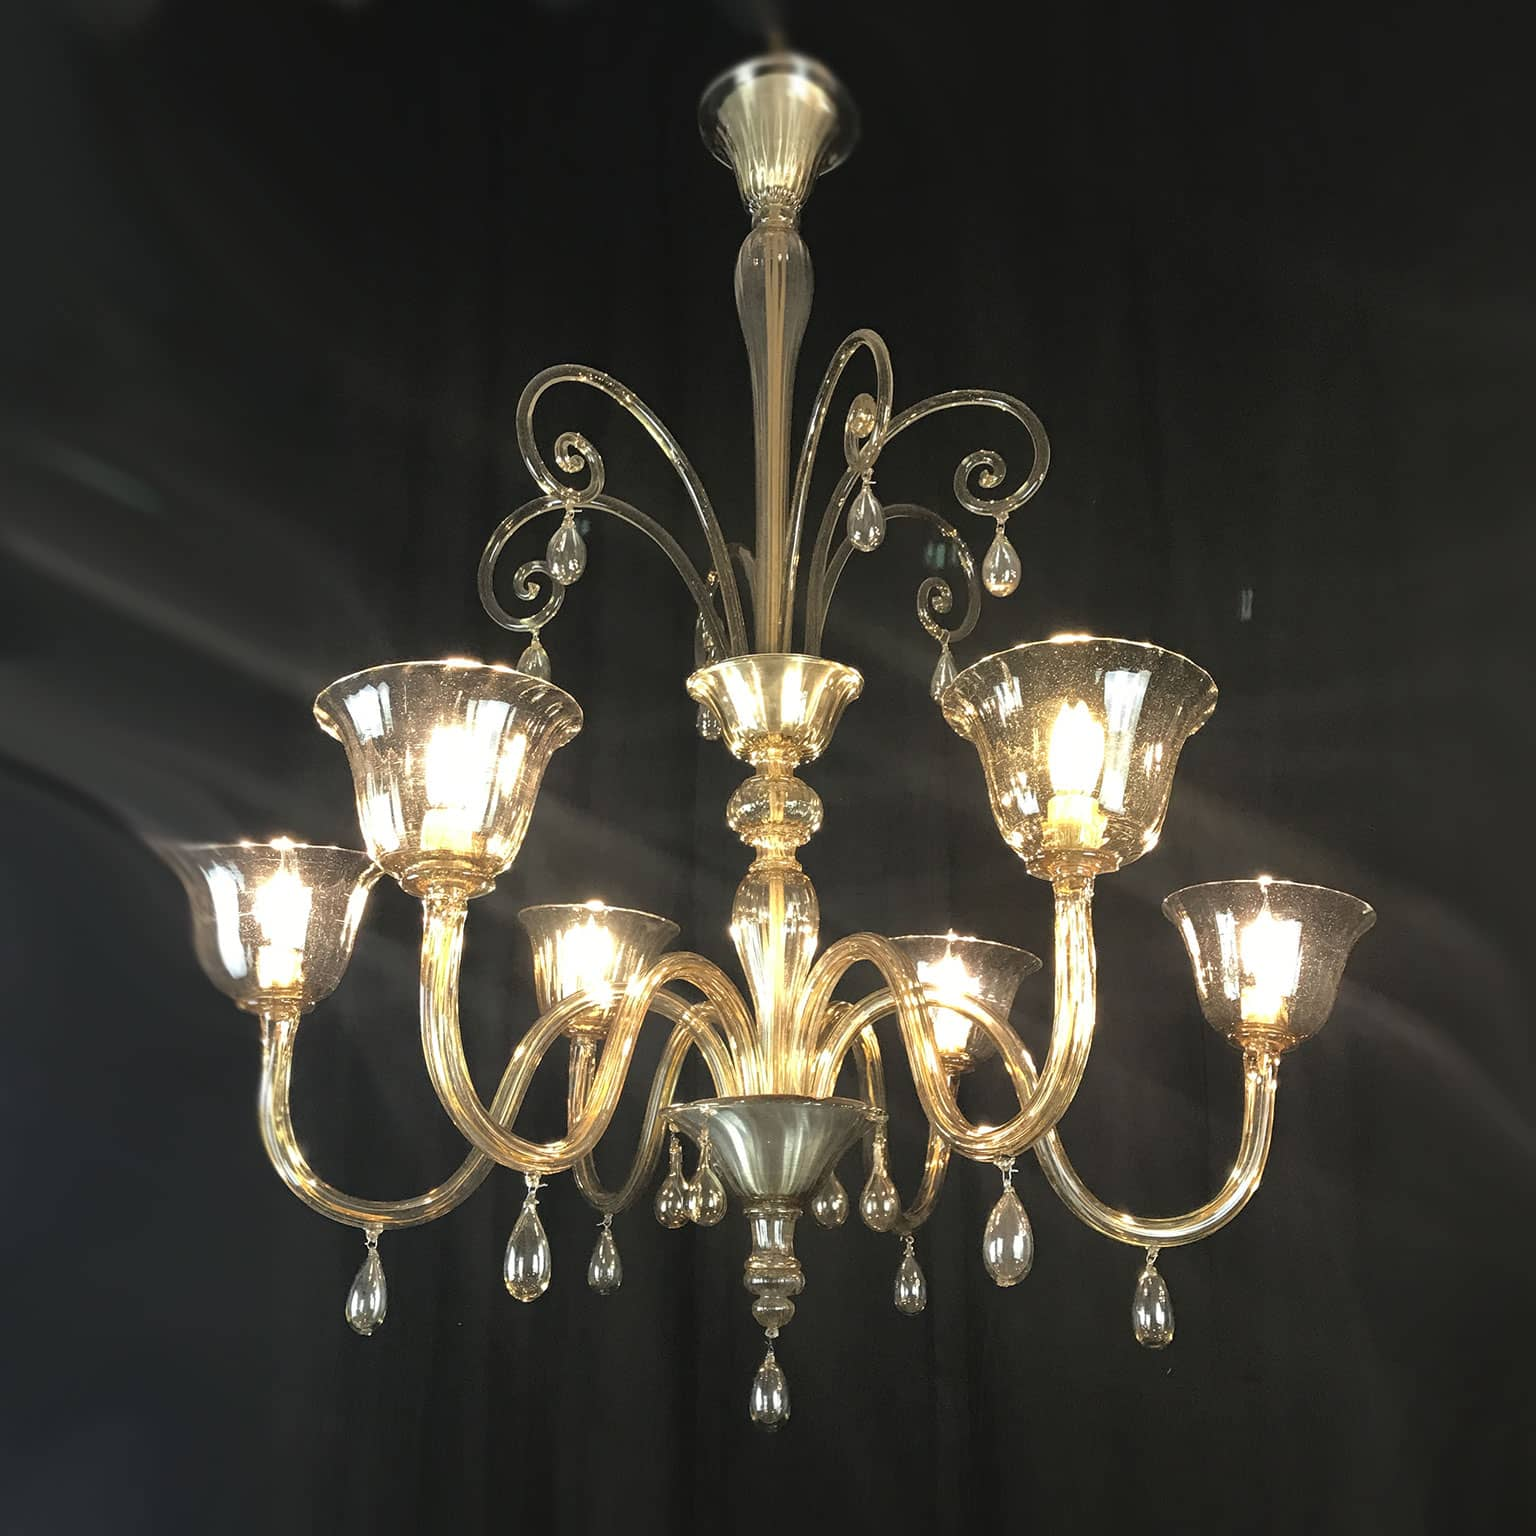 light finish today clear mini garden bronze and shipping basket product chandelier crystal bulb home overstock metro antique free candelabra